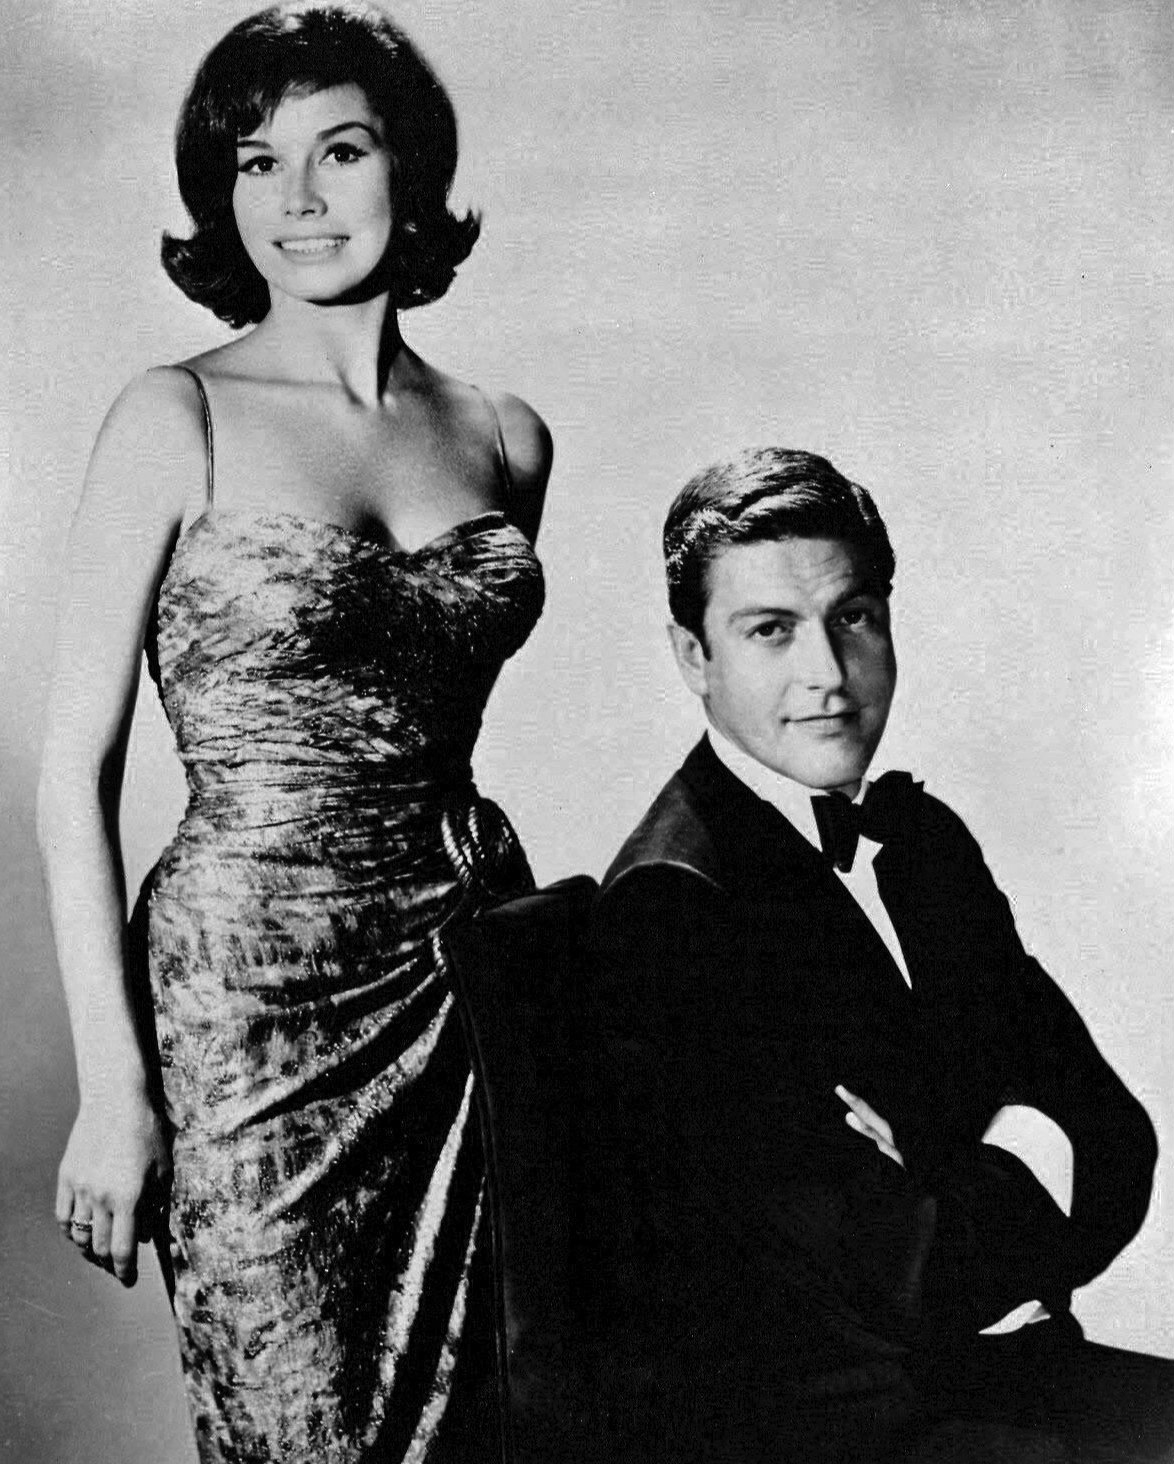 With Dick Van Dyke, 1966